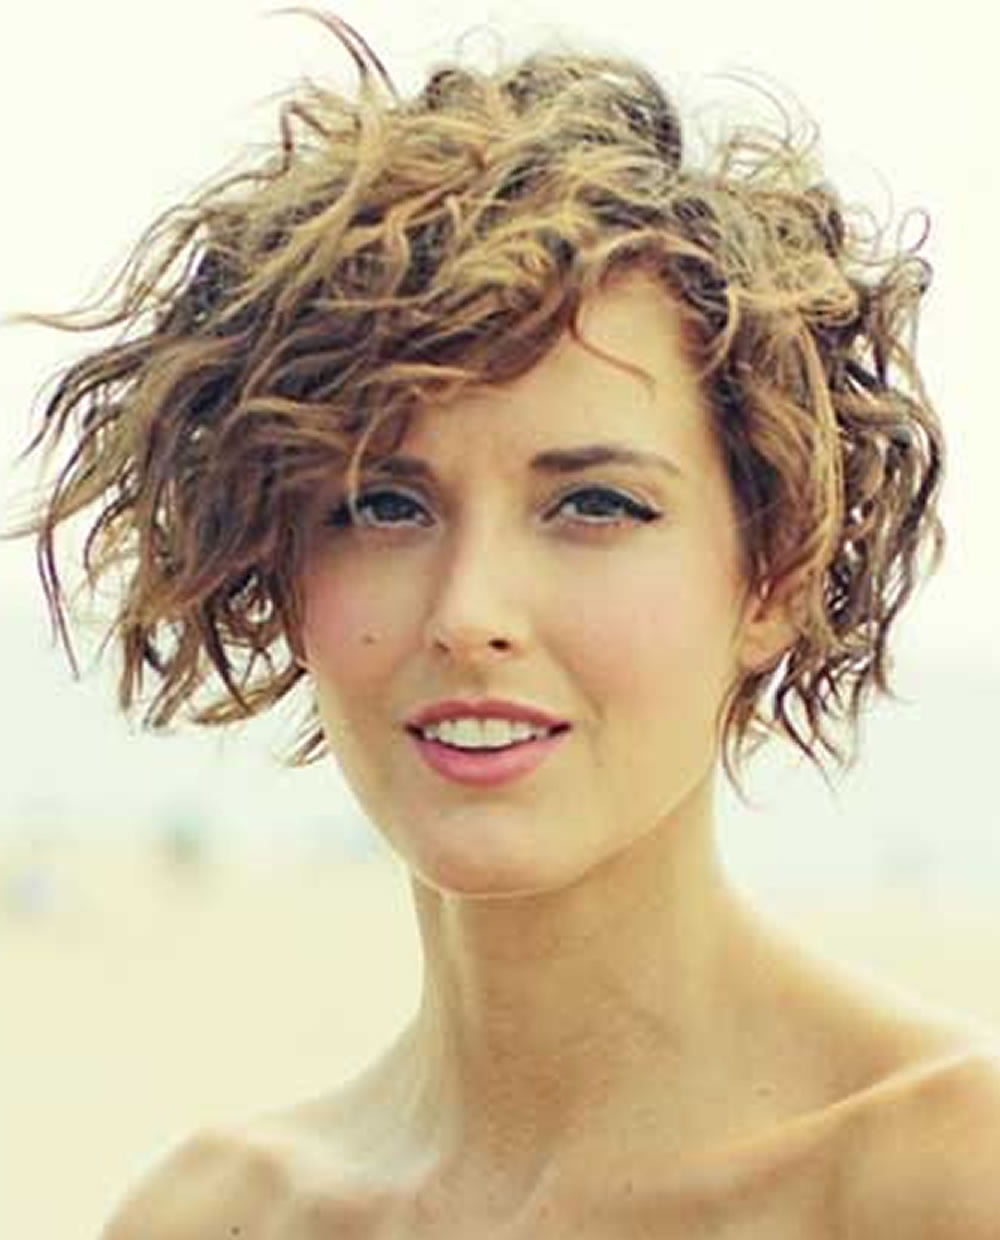 Asymmetrical Short Curly Hair Styles 2018 2019 Short Bob Haircuts Page 9 Hairstyles